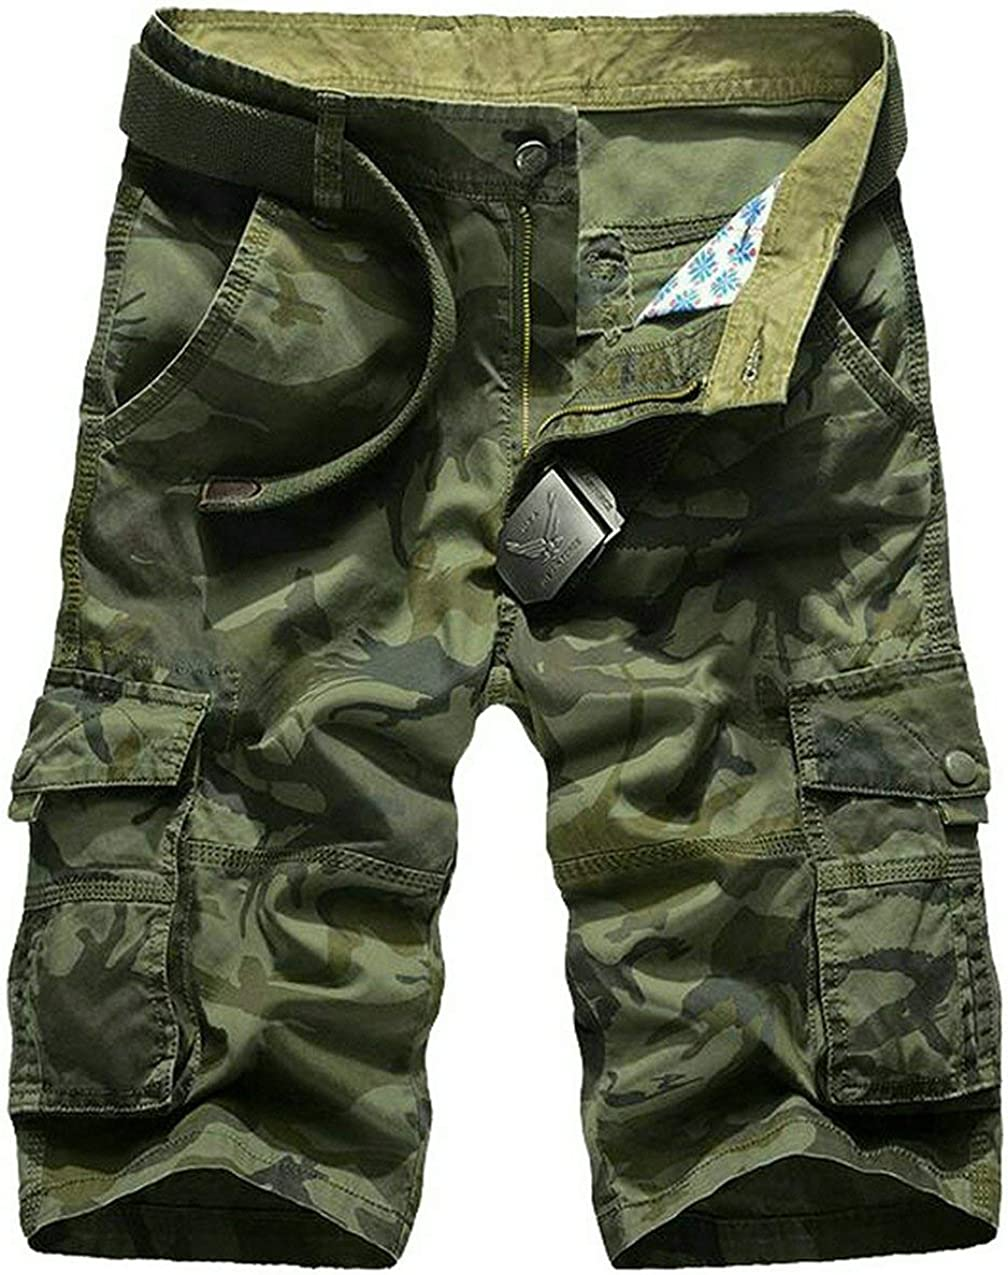 MK988 Mens Summer Multi Pockets Military Camo Cotton Rugged Washed Cargo Shorts